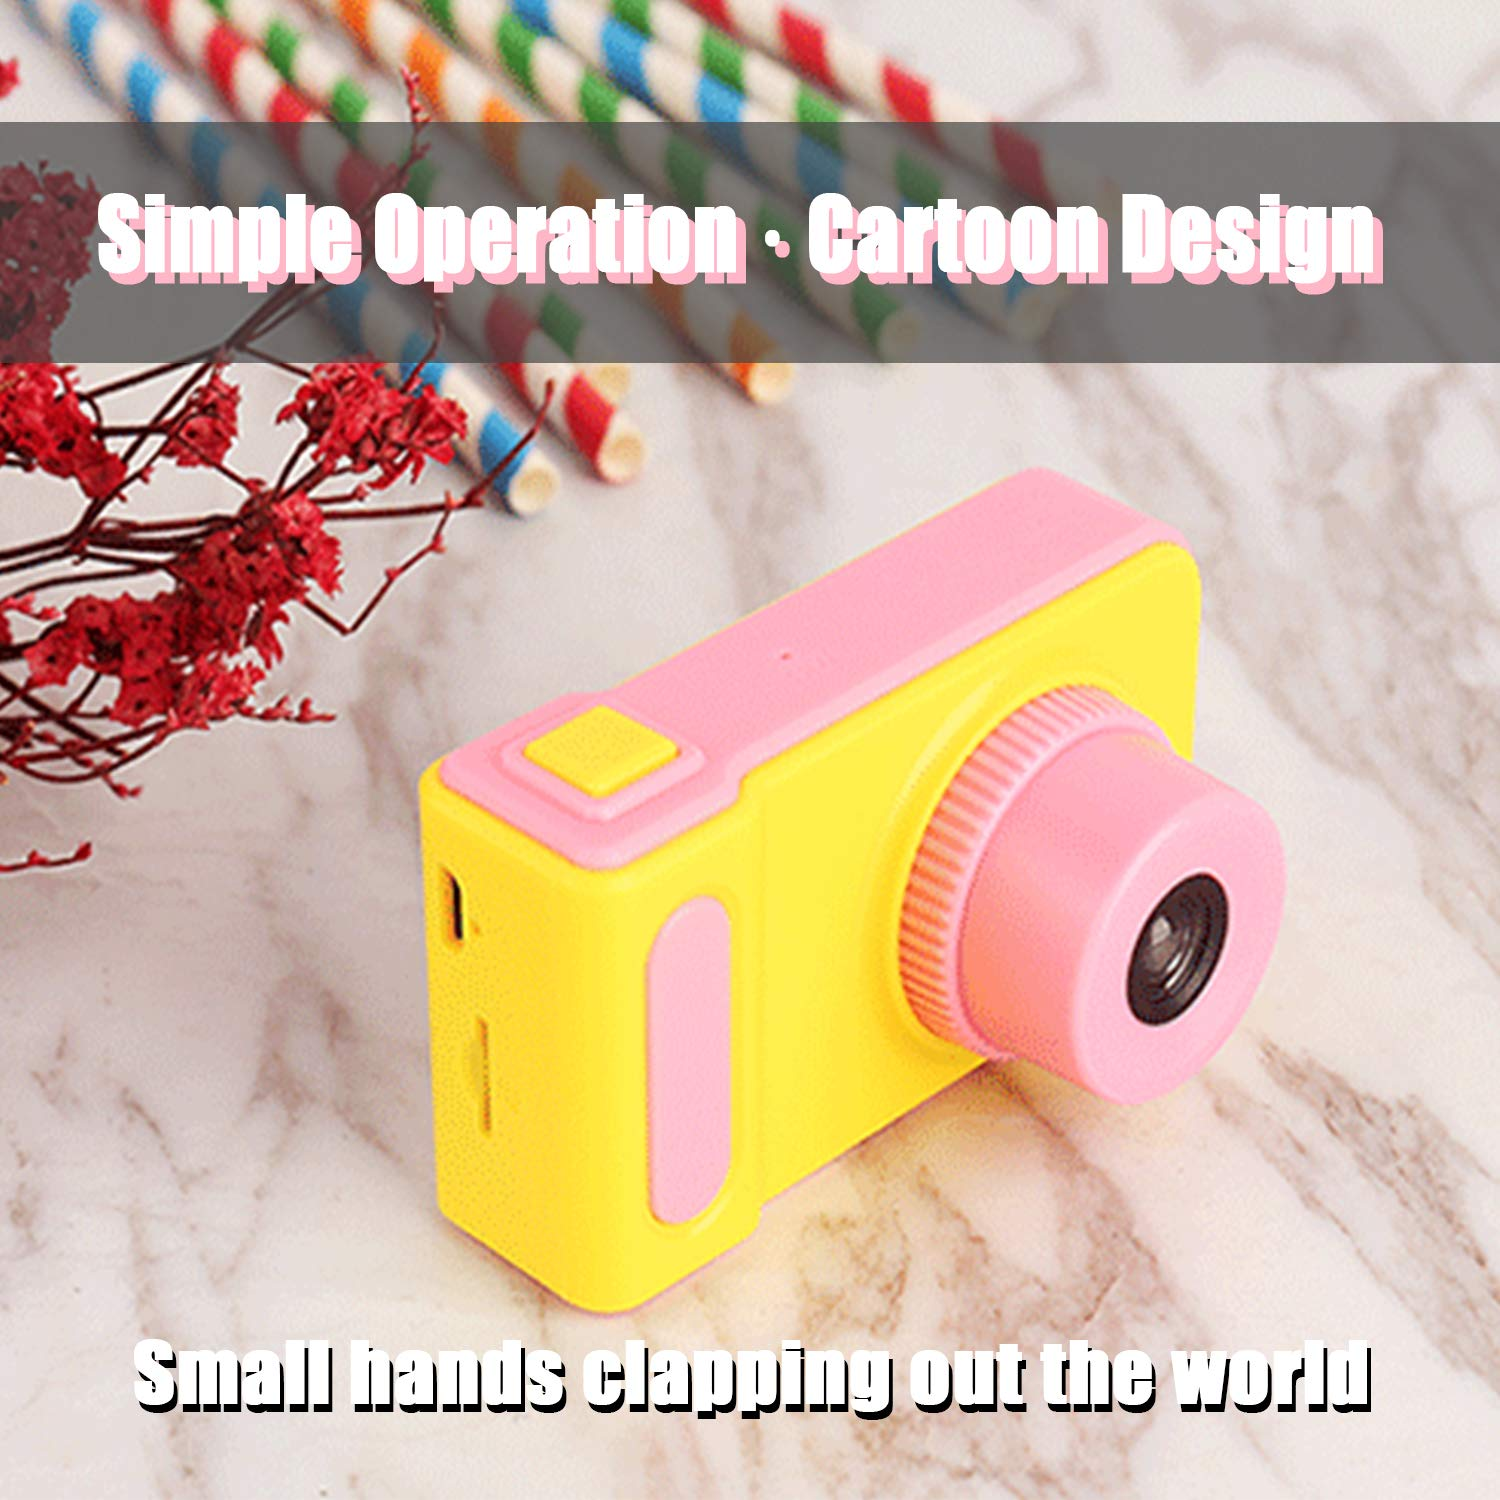 Basic-Pink Shockproof Digital Cameras for Child Boys Girls Hachis Choice Kids Camera for 4-7 Year Old Boys and Girls Compact Camcorder Best Birthday Festival Gifts for Kid